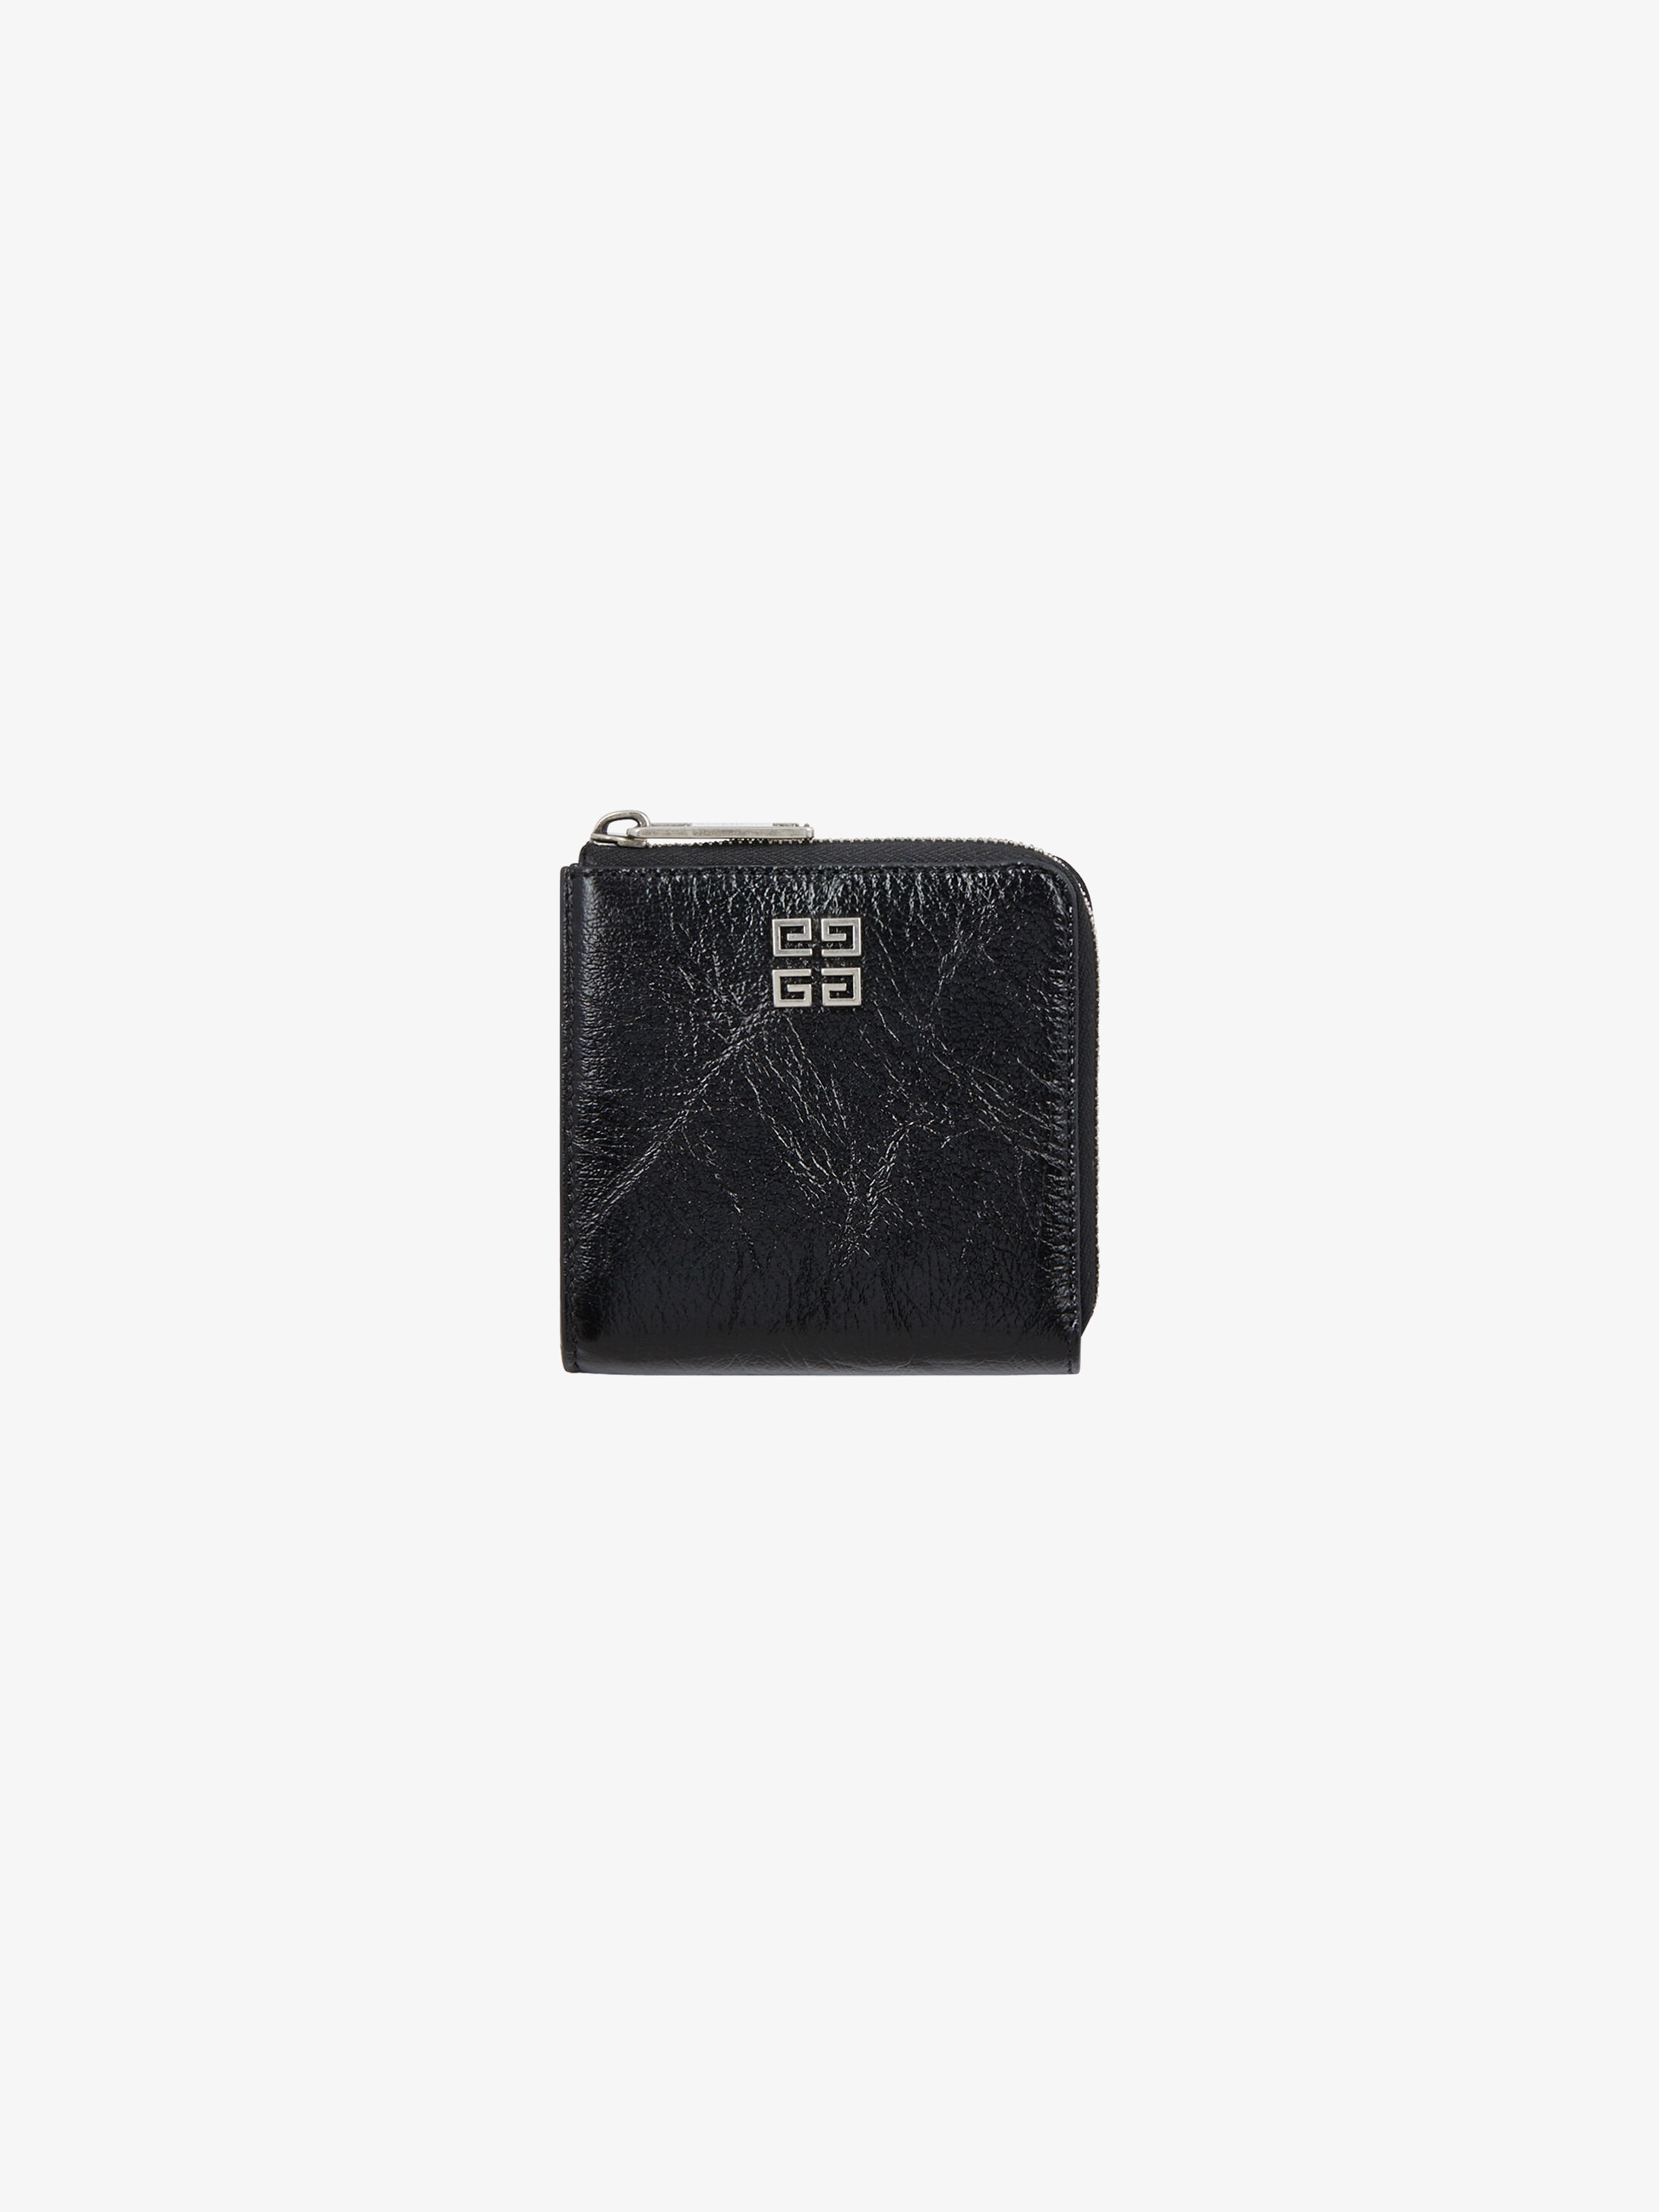 06c2b0cc5c Men's Wallets collection by Givenchy. | GIVENCHY Paris